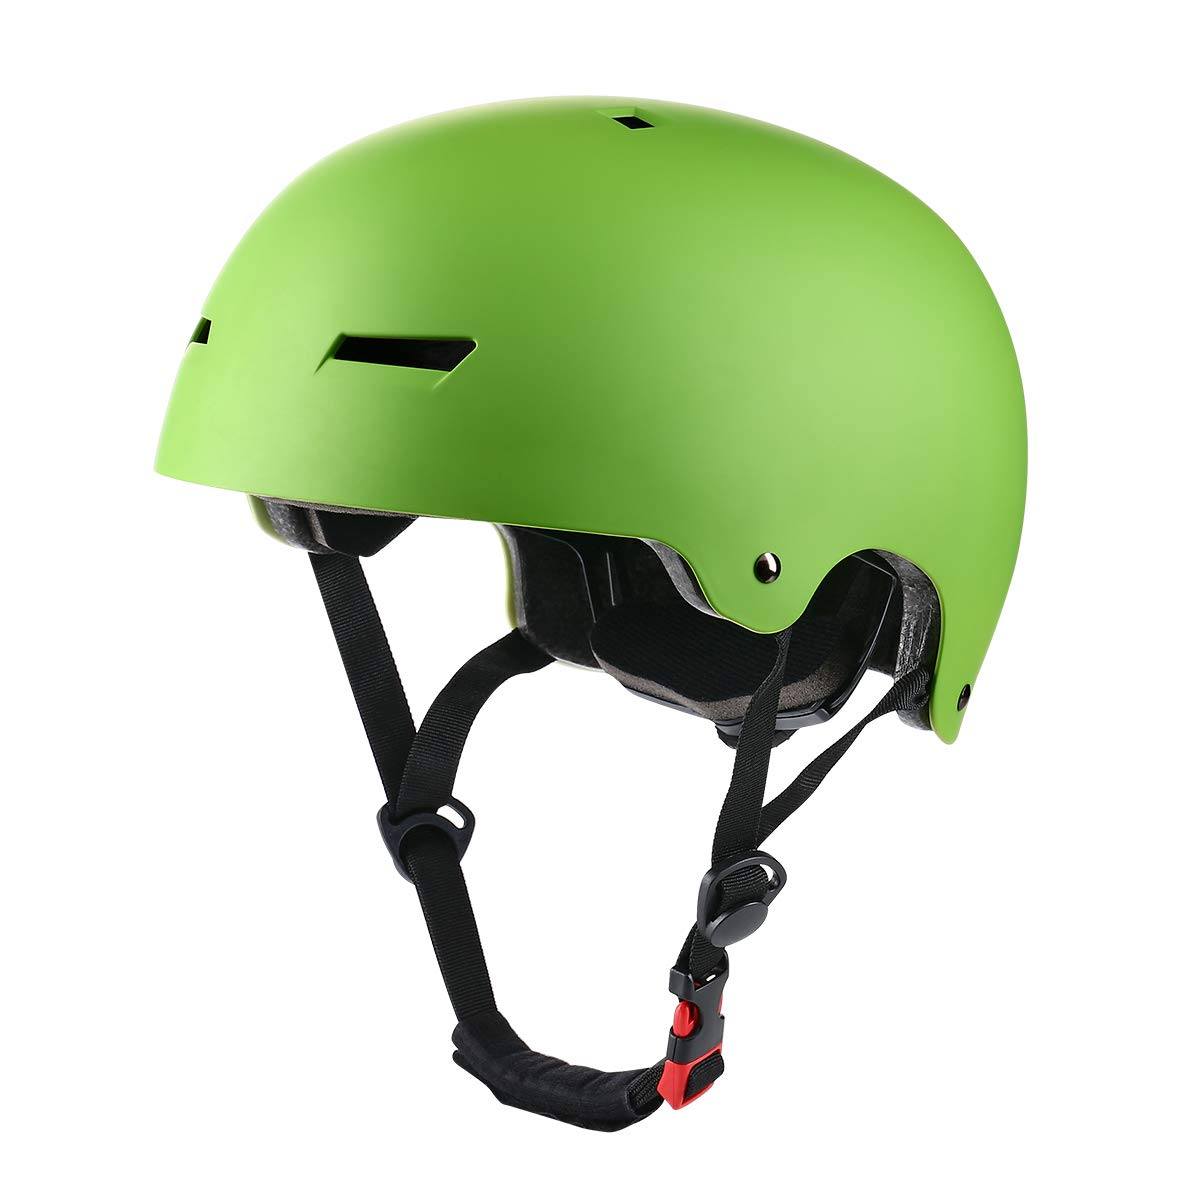 PHZING Kid's Bike Helmet with Adjustable System Ideal for Skateboard Longboard Scooter Skate/Inline Skating for Adults/Youth/Kids